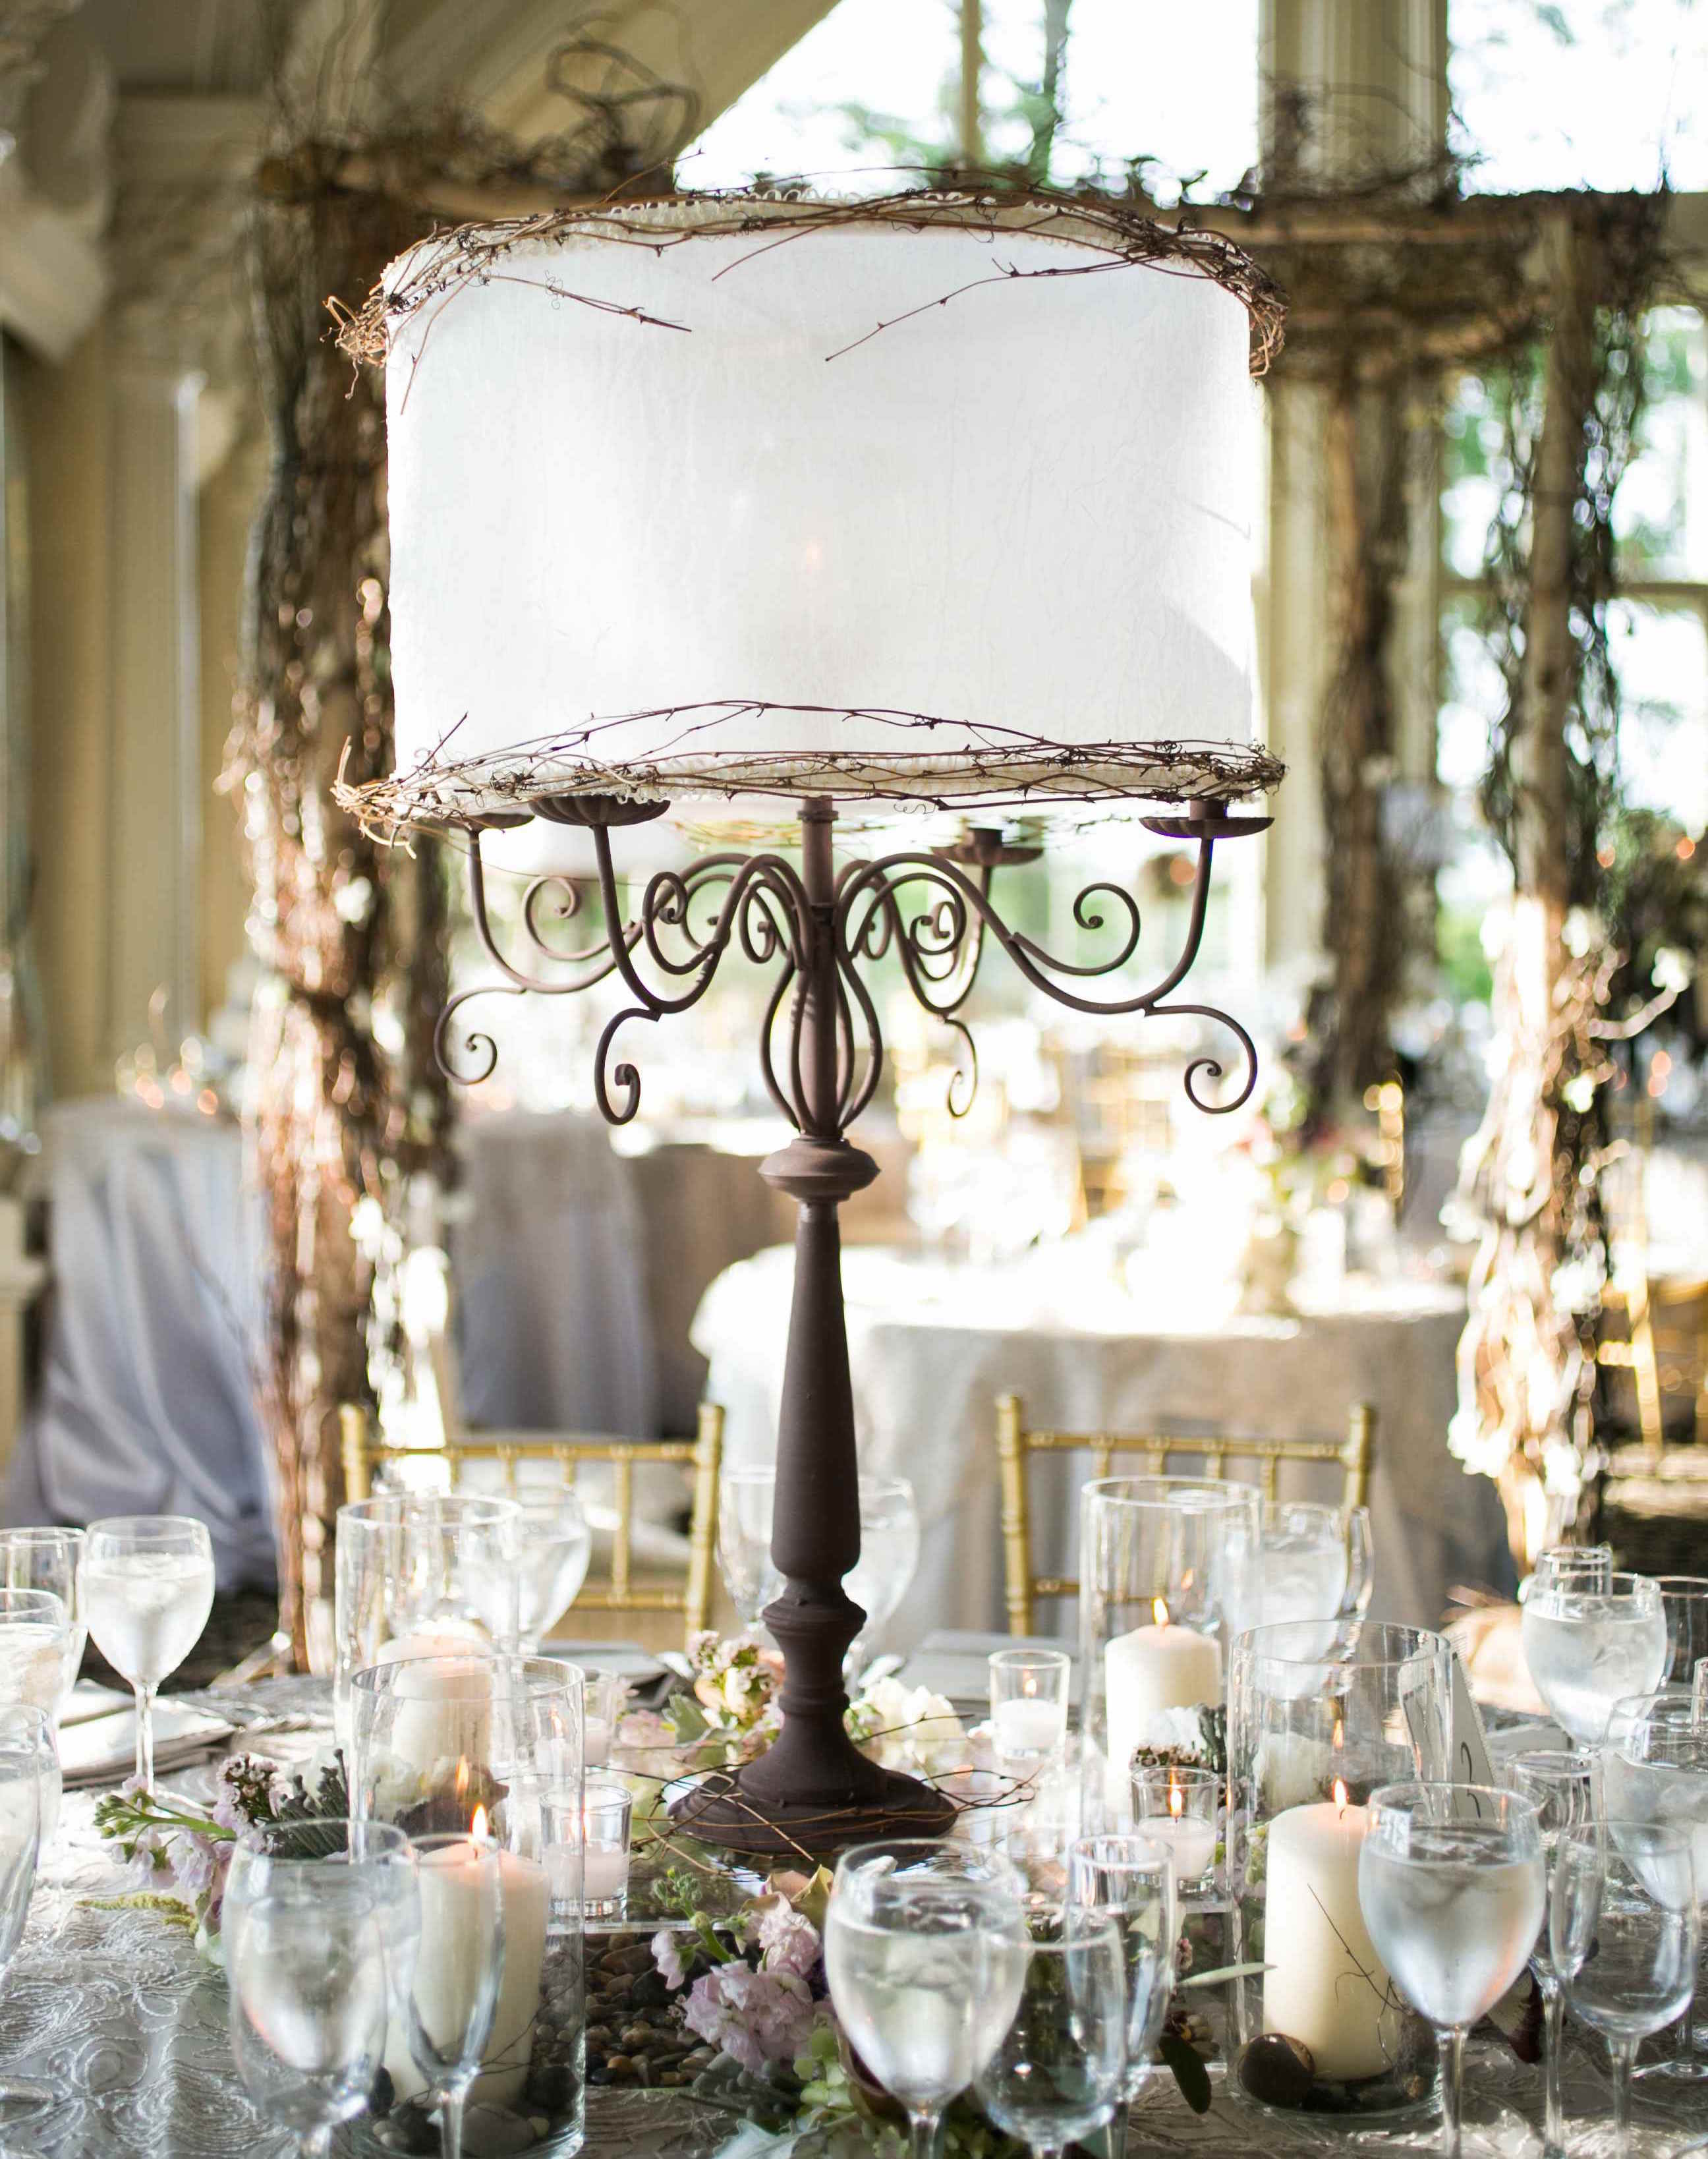 Wedding Ideas: 25 Rustic Wedding Centerpieces - Inside Weddings